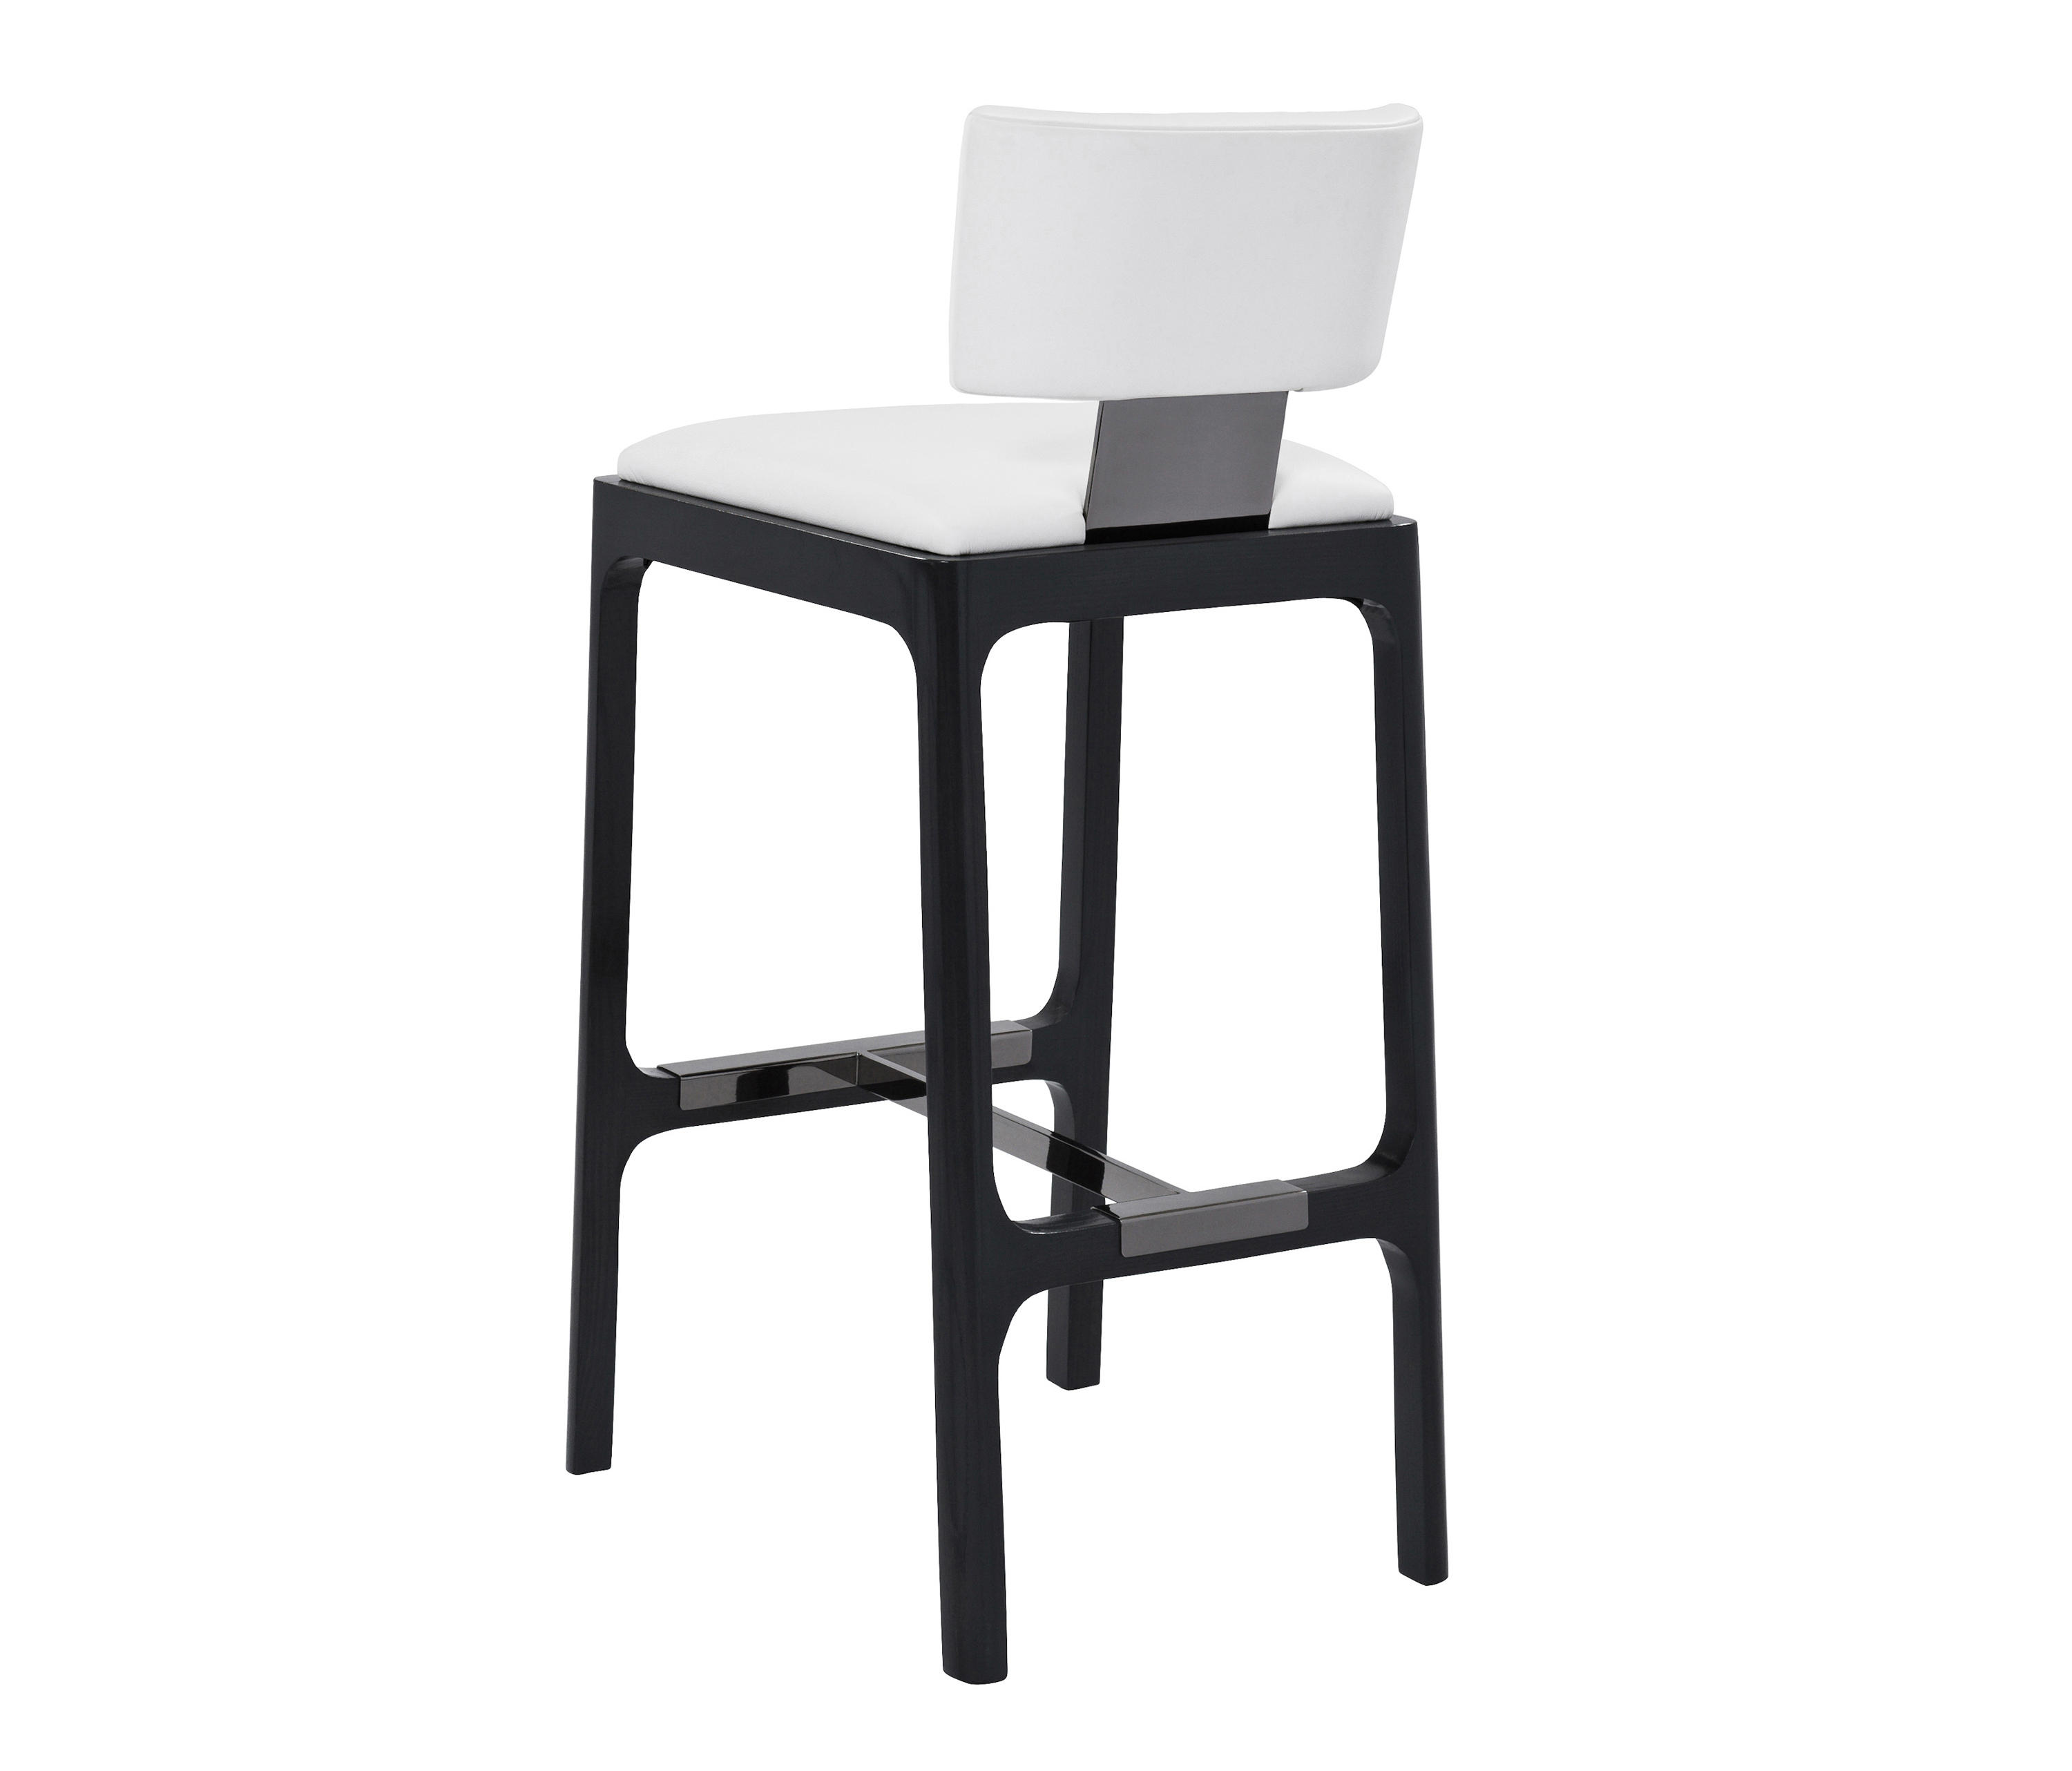 Powell And Bonnell Mulholland Chair By Powell U Bonnell